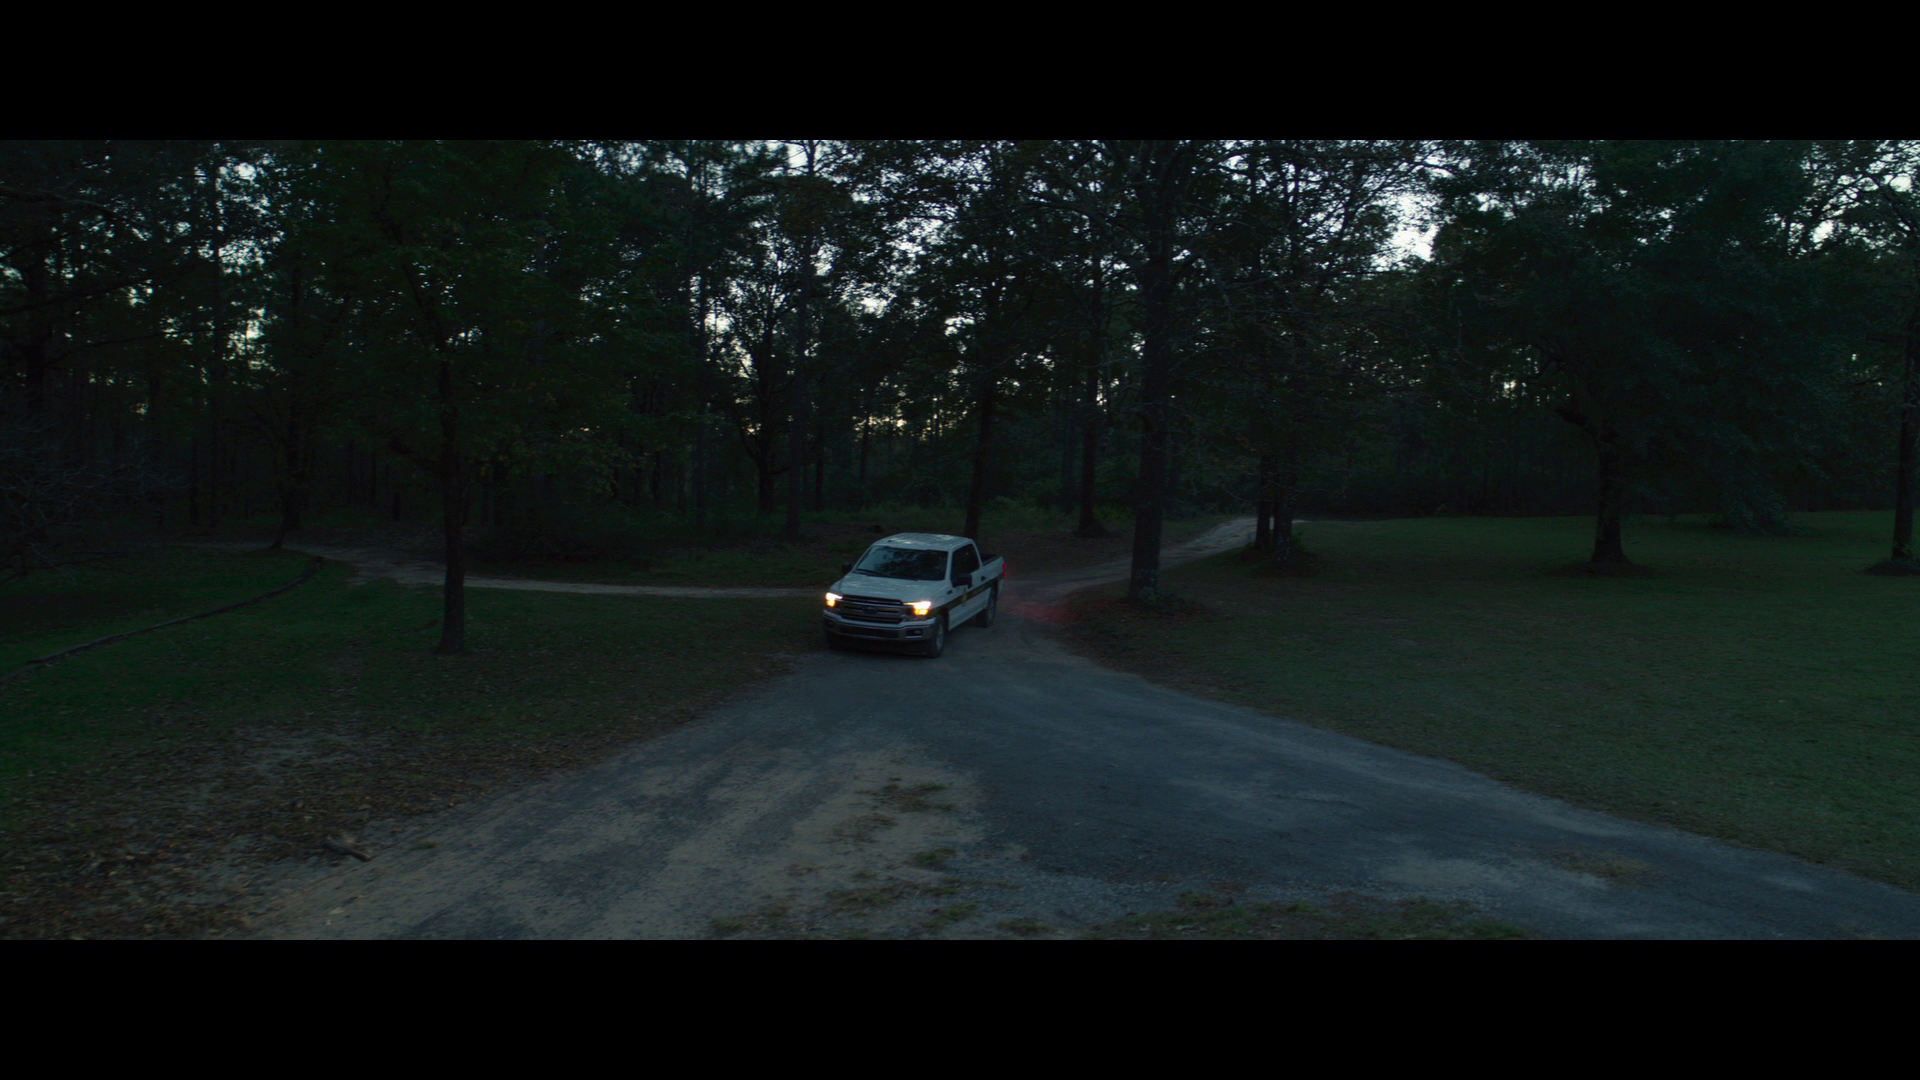 Arkansas 2020 BluRay REMUX 1080p AVC DTS-HD MA 5.1-EPSiLON